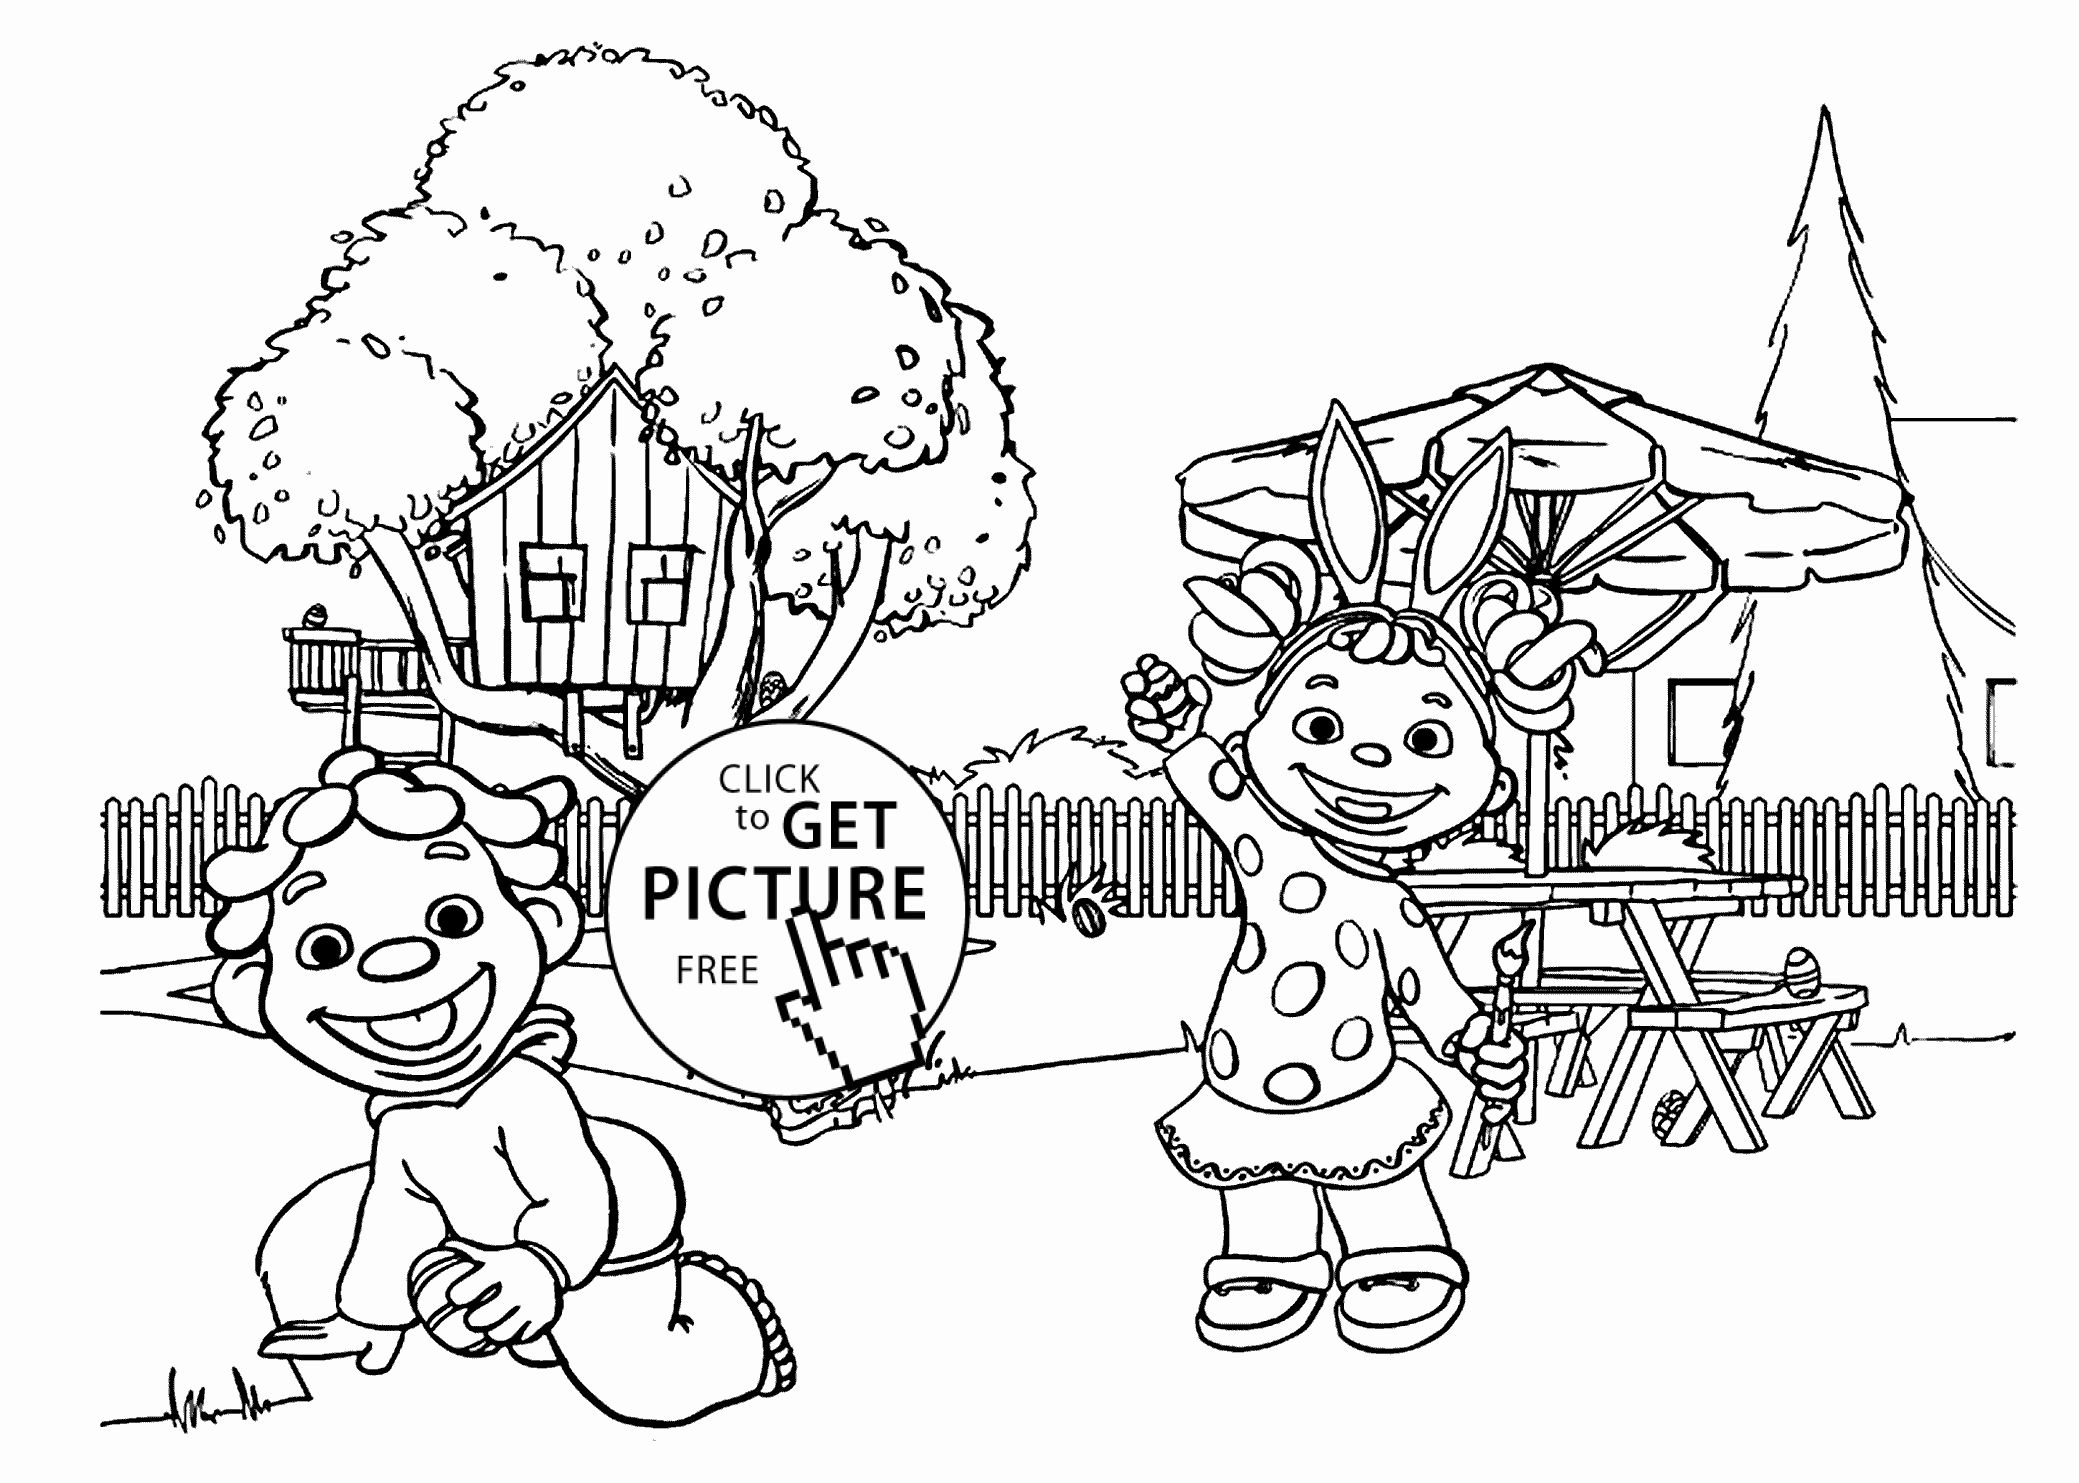 Free Science Coloring Pages In 2020 Kids Coloring Books Free Coloring Pages Cartoon Coloring Pages